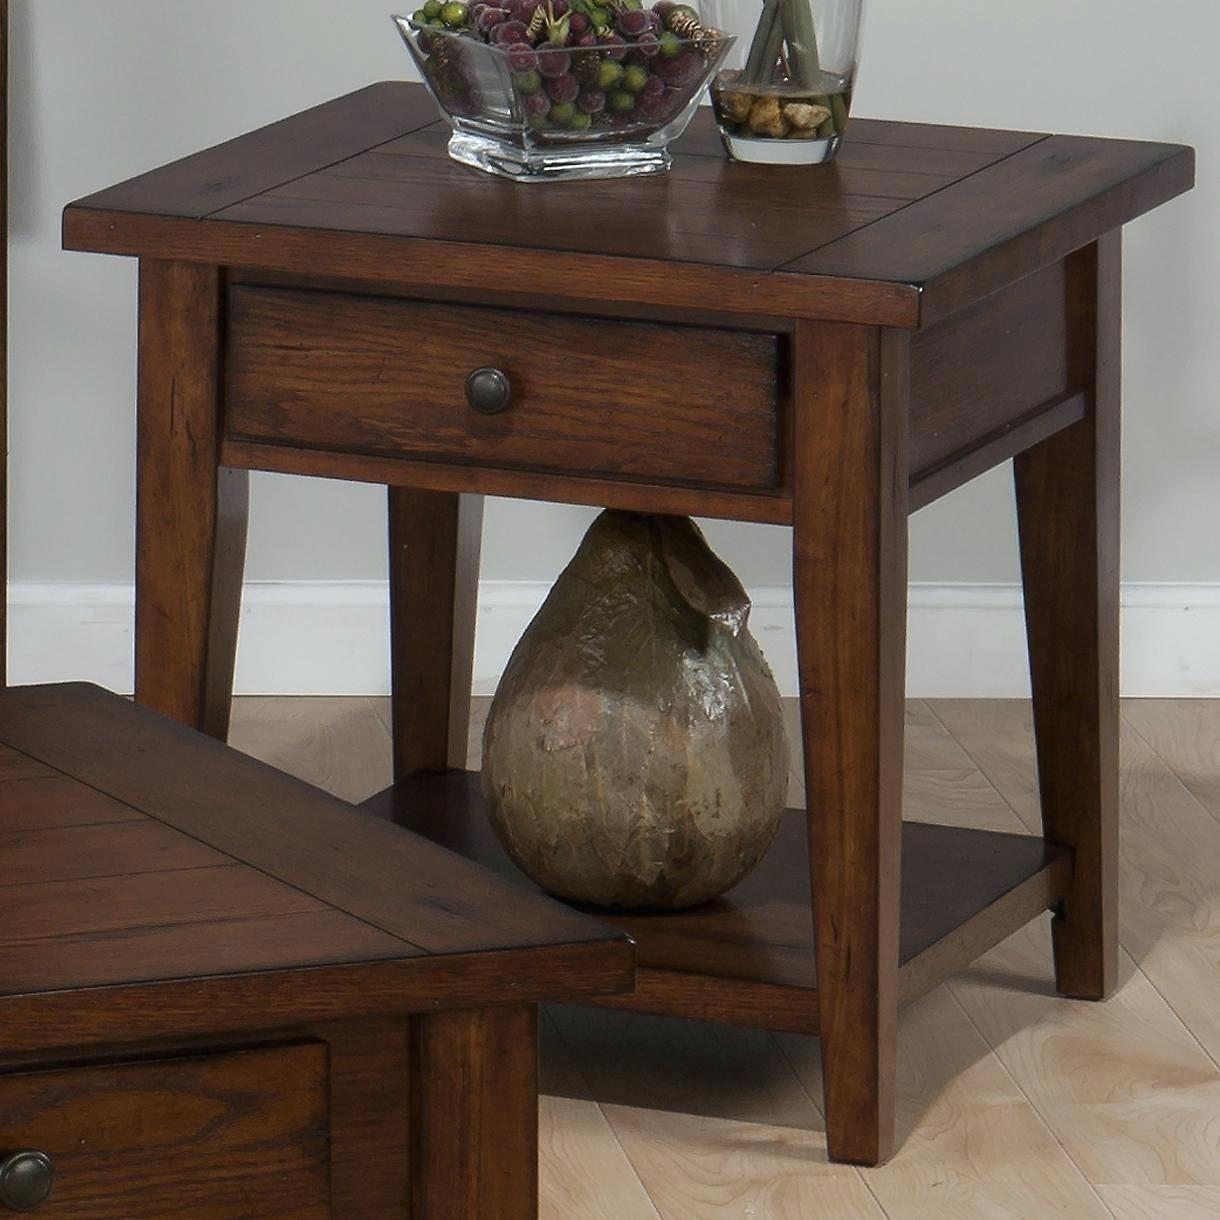 end tables with drawer and shelf clay county oak table side small accent rectangular mosaic inch round lace tablecloth glass contemporary ikea tops west elm industrial coffee